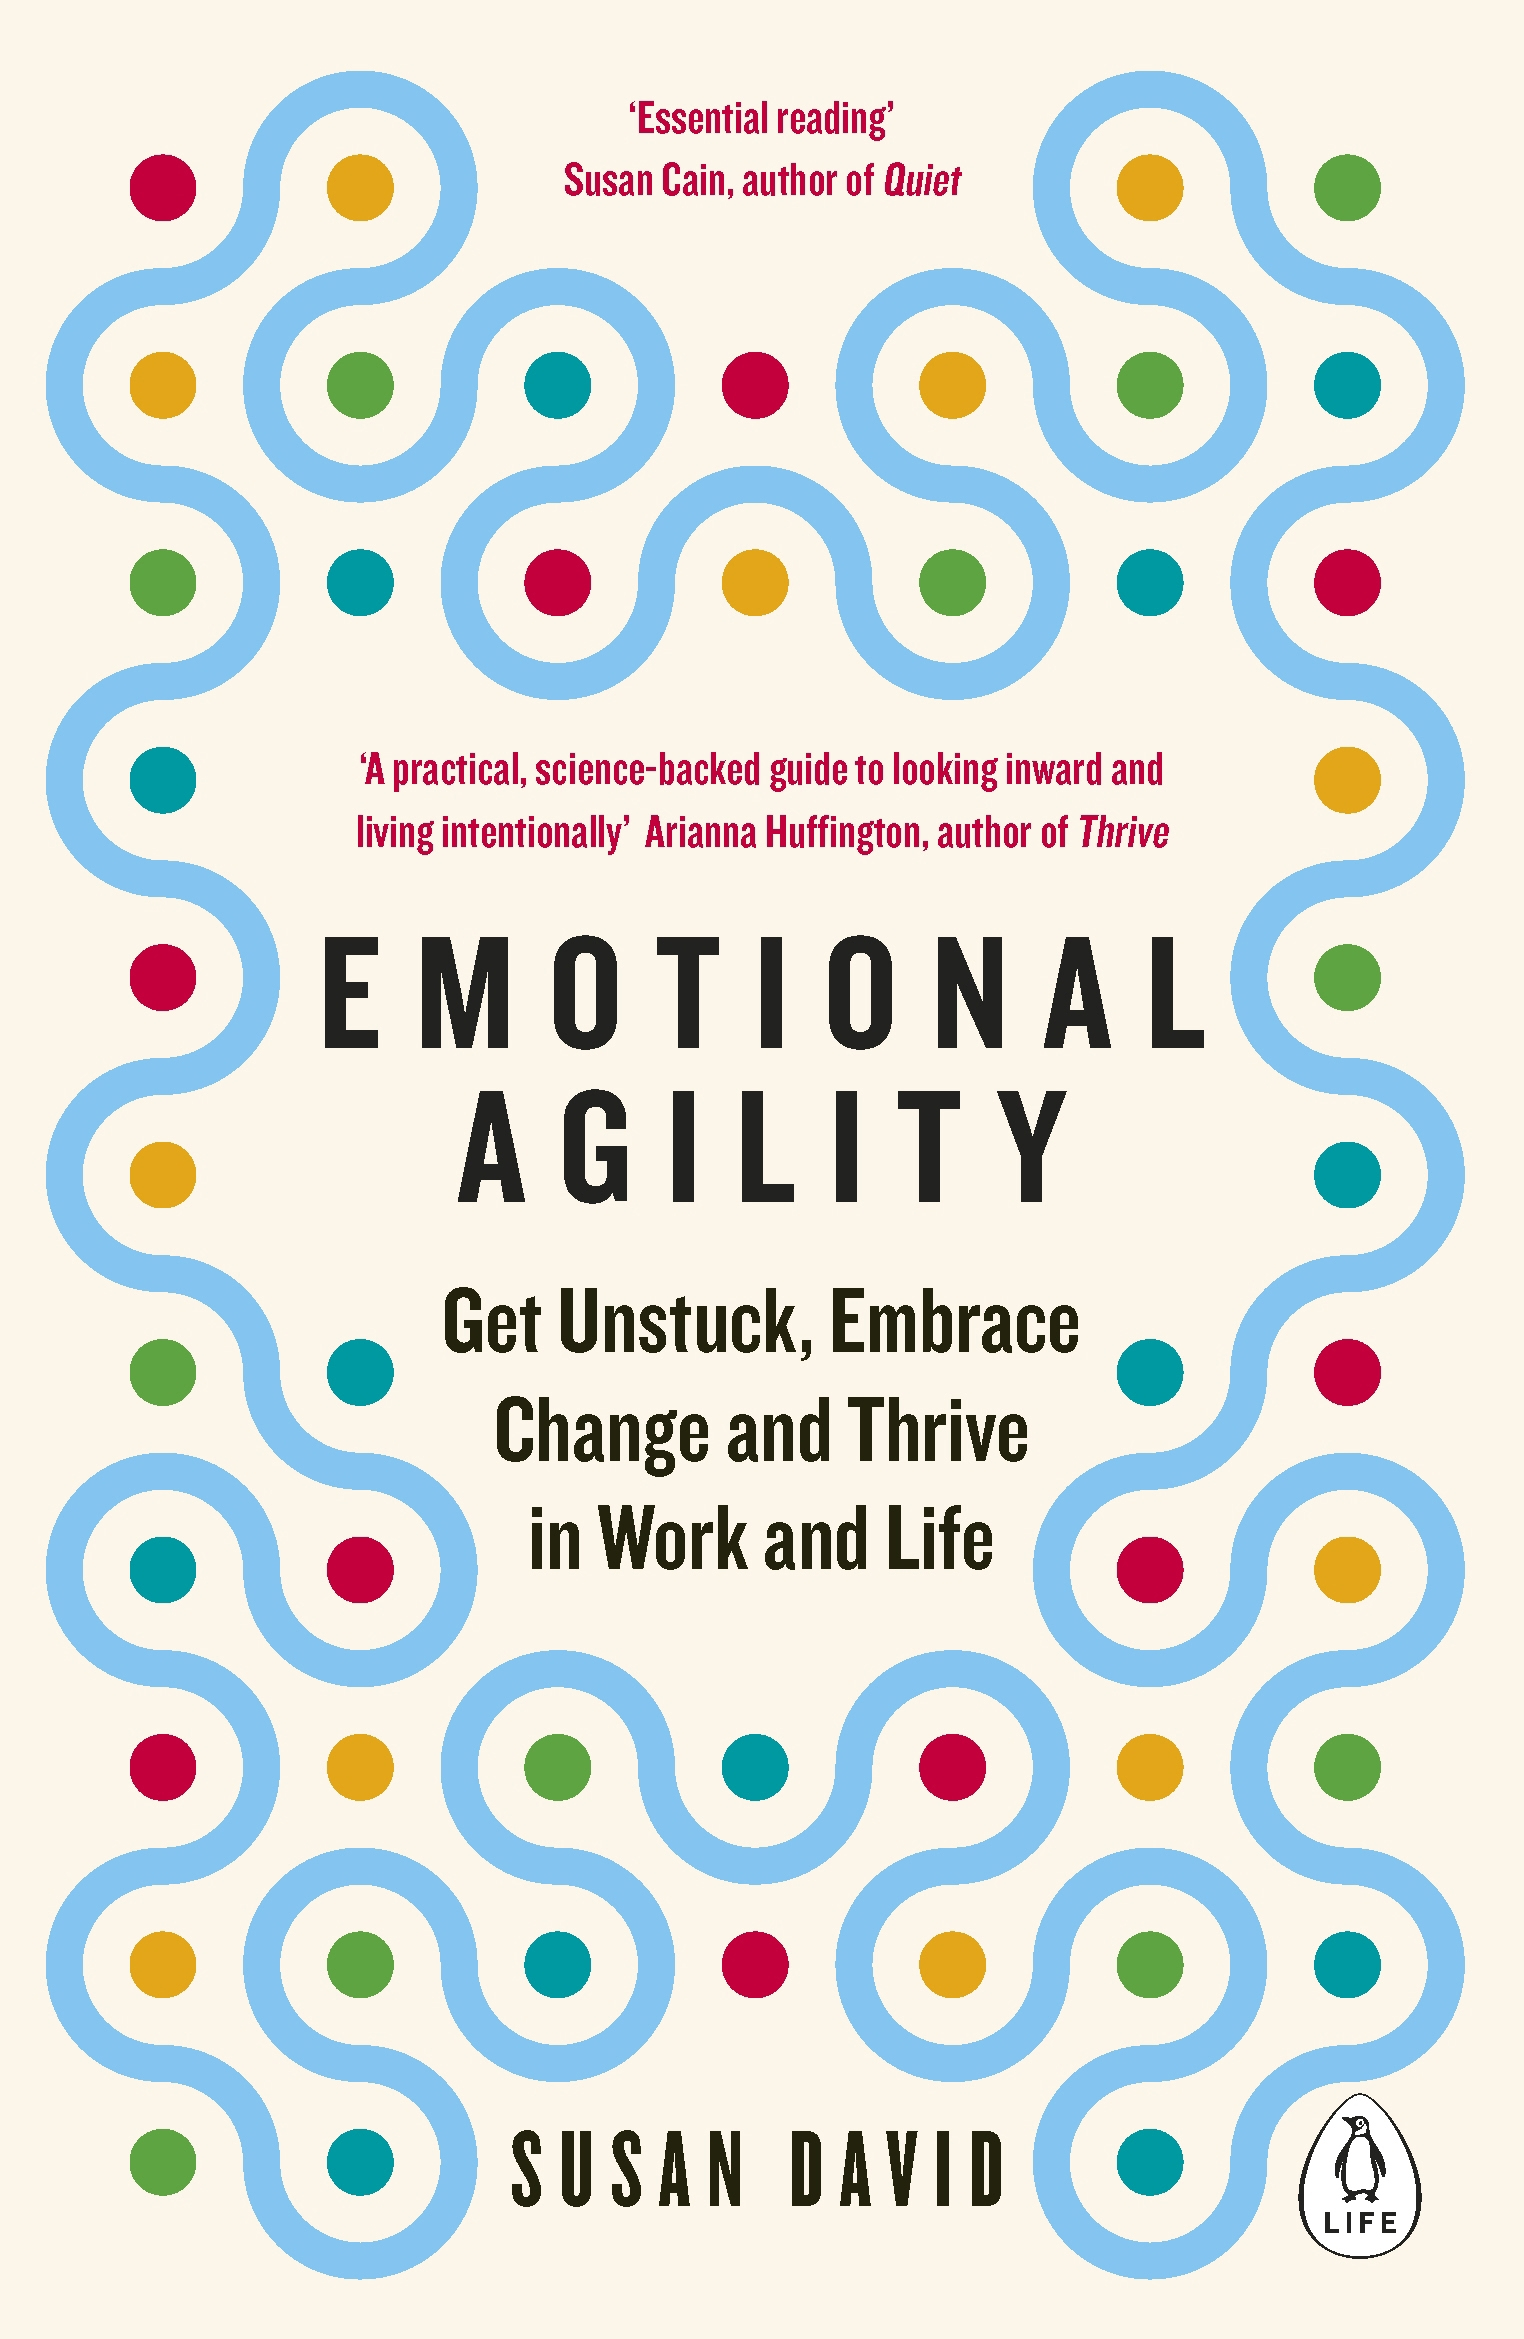 Teaching Your Child Emotional Agility >> Emotional Agility Get Unstuck Embrace Change And Thrive In Work